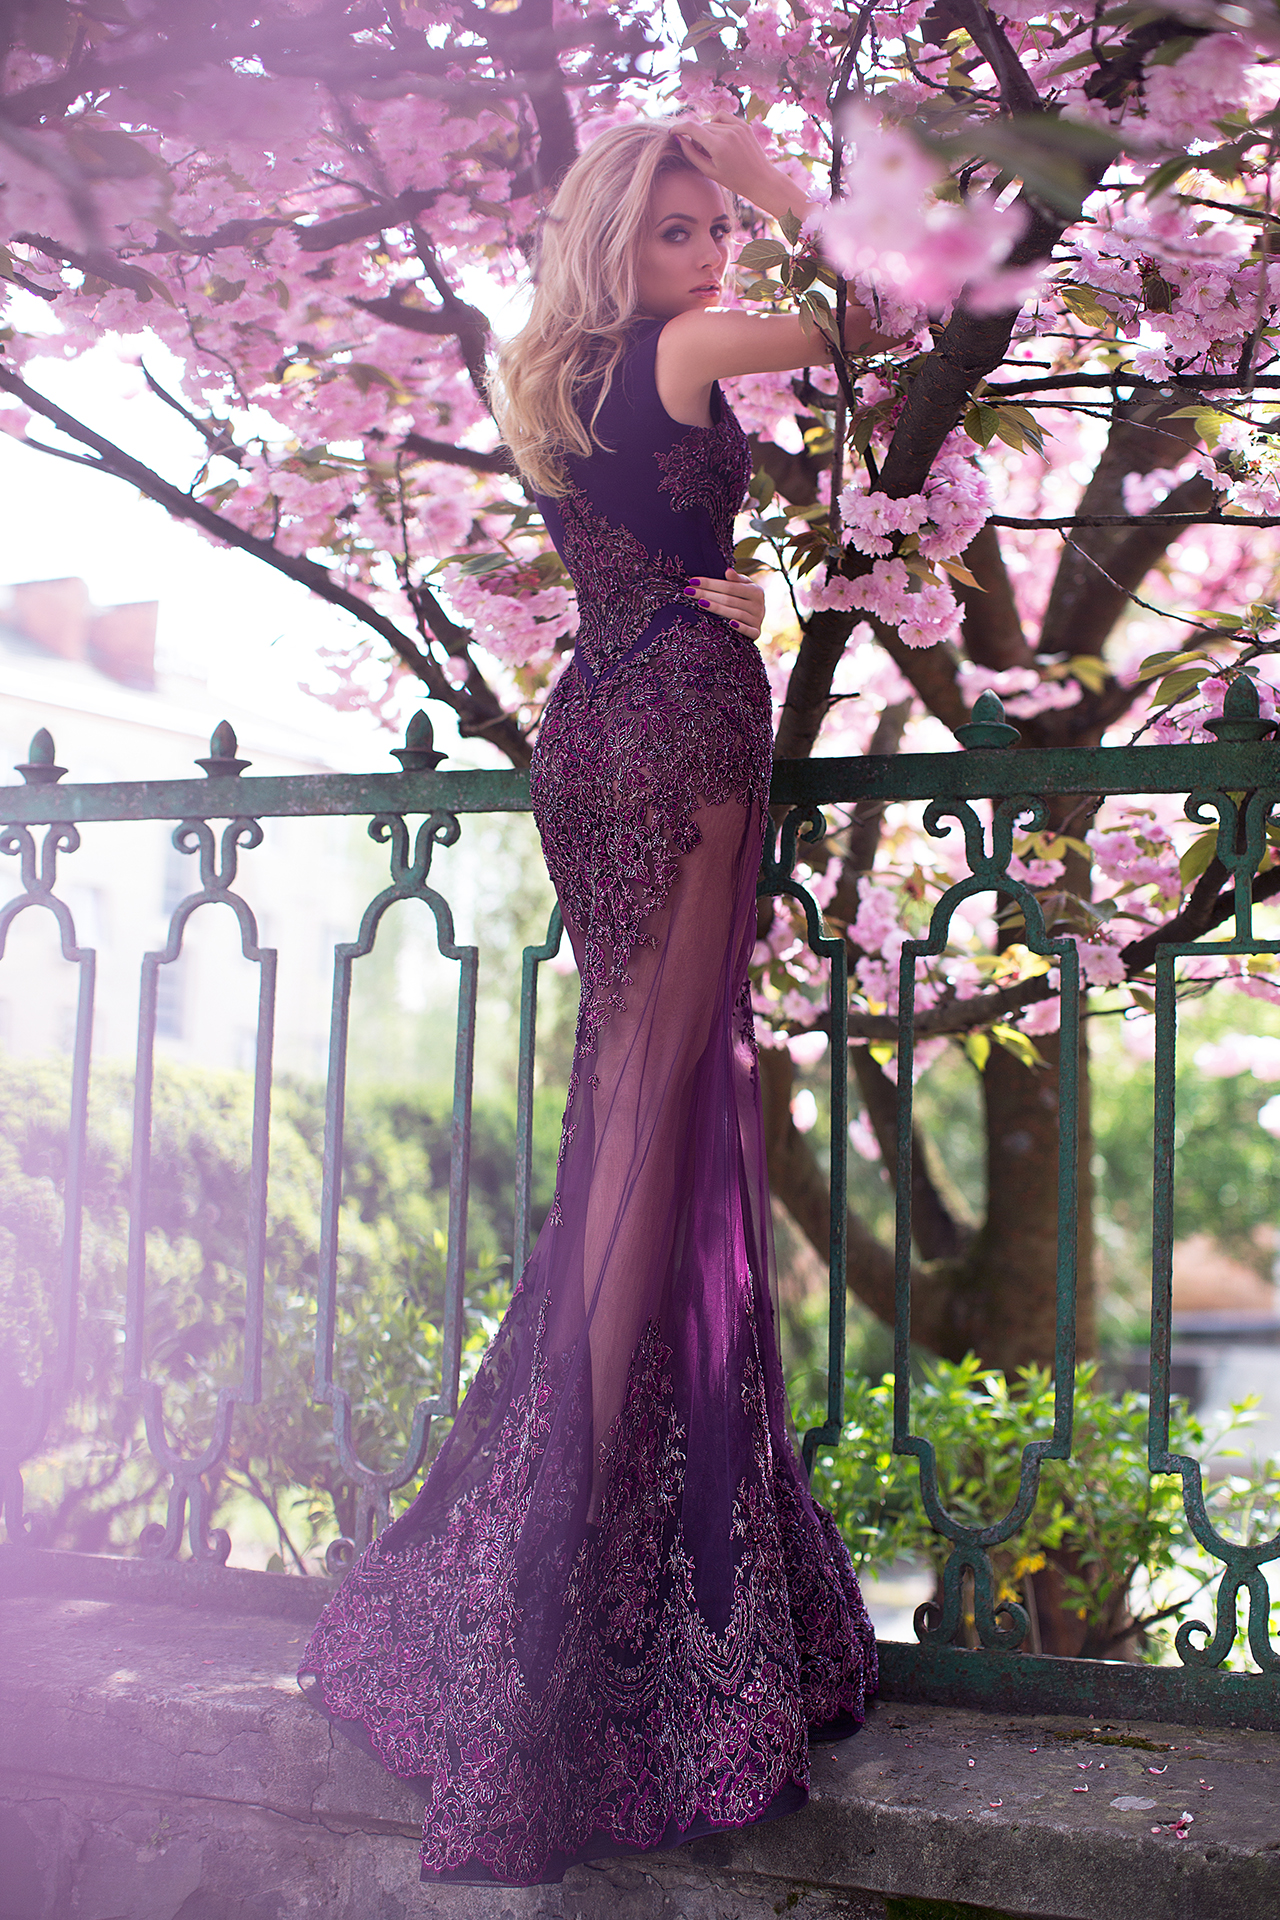 Evening Dresses 1112 Silhouette  Fitted  Color  Violet  Neckline  Bateau (Boat Neck)  Sleeves  Wide straps  Train  No train - foto 3